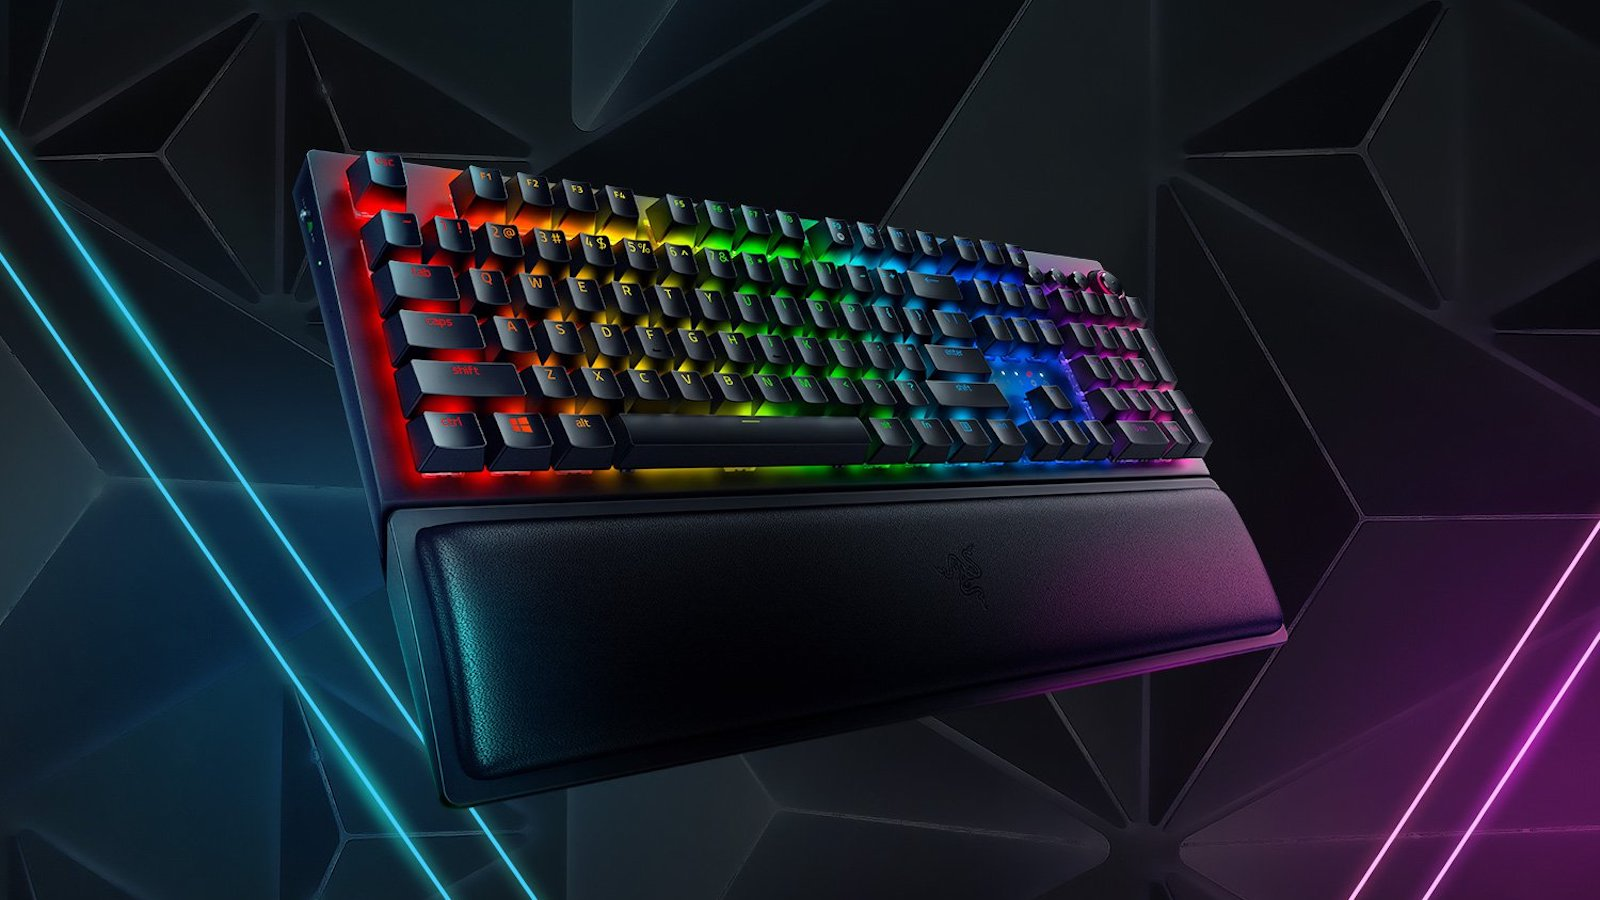 Razer BlackWidow V3 Pro mechanical gaming keyboard